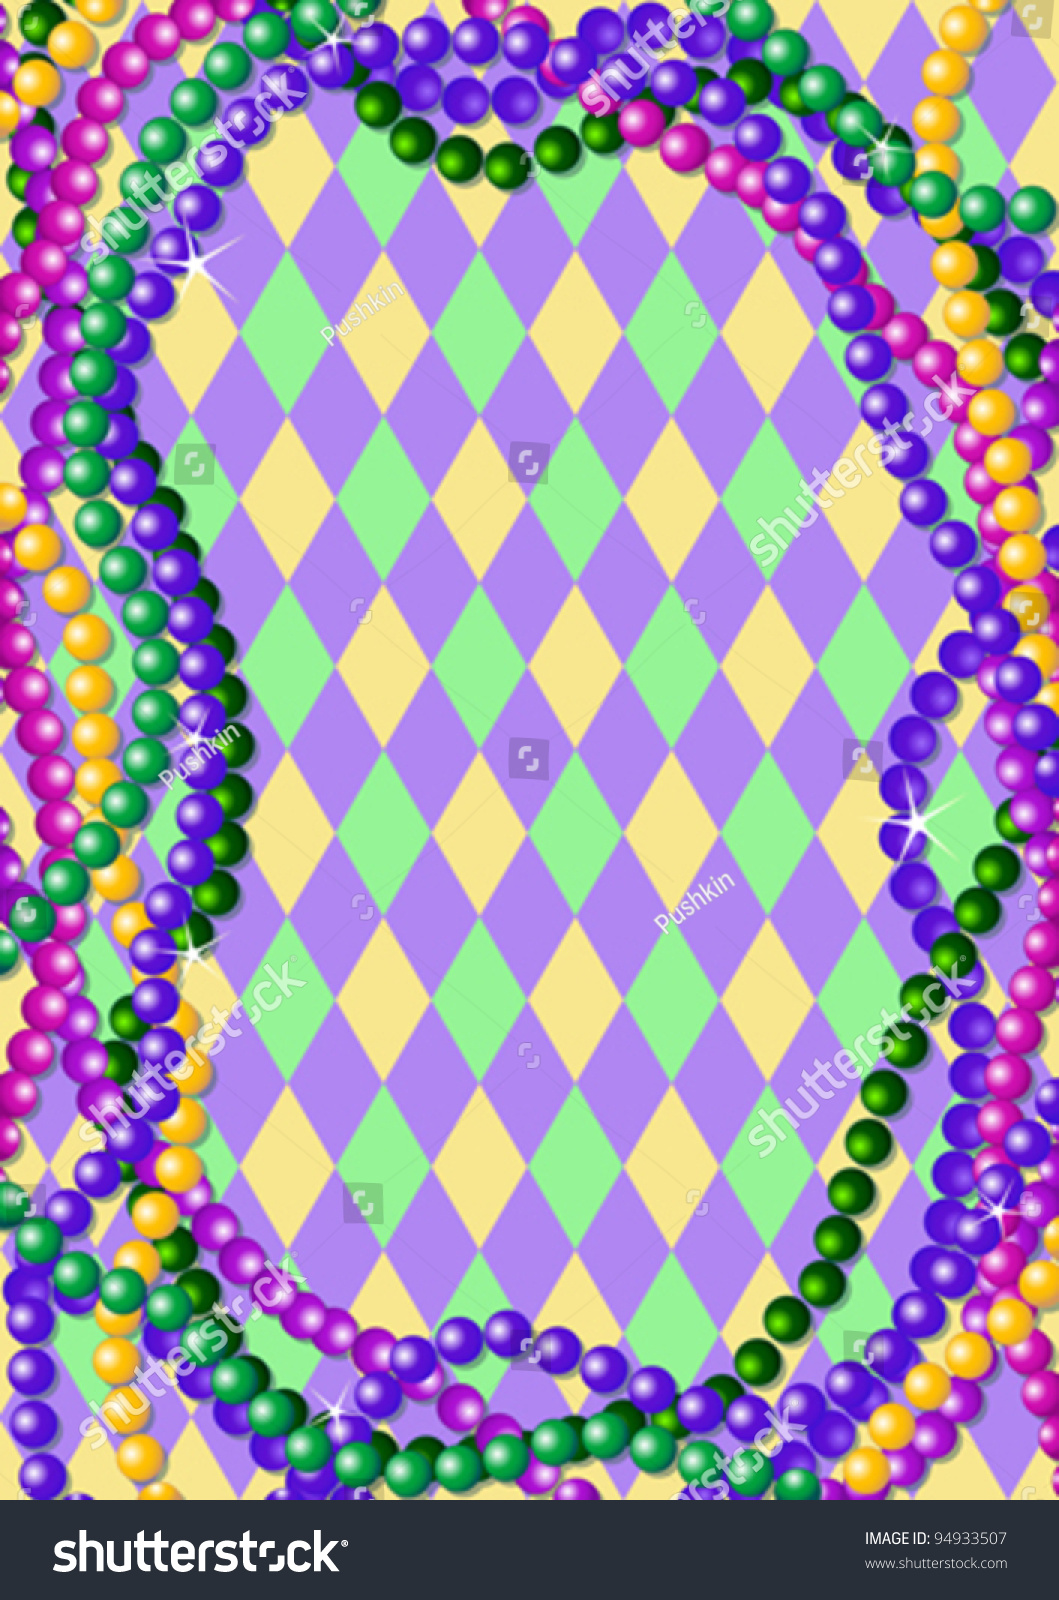 mardi gras beads background place text stock vector